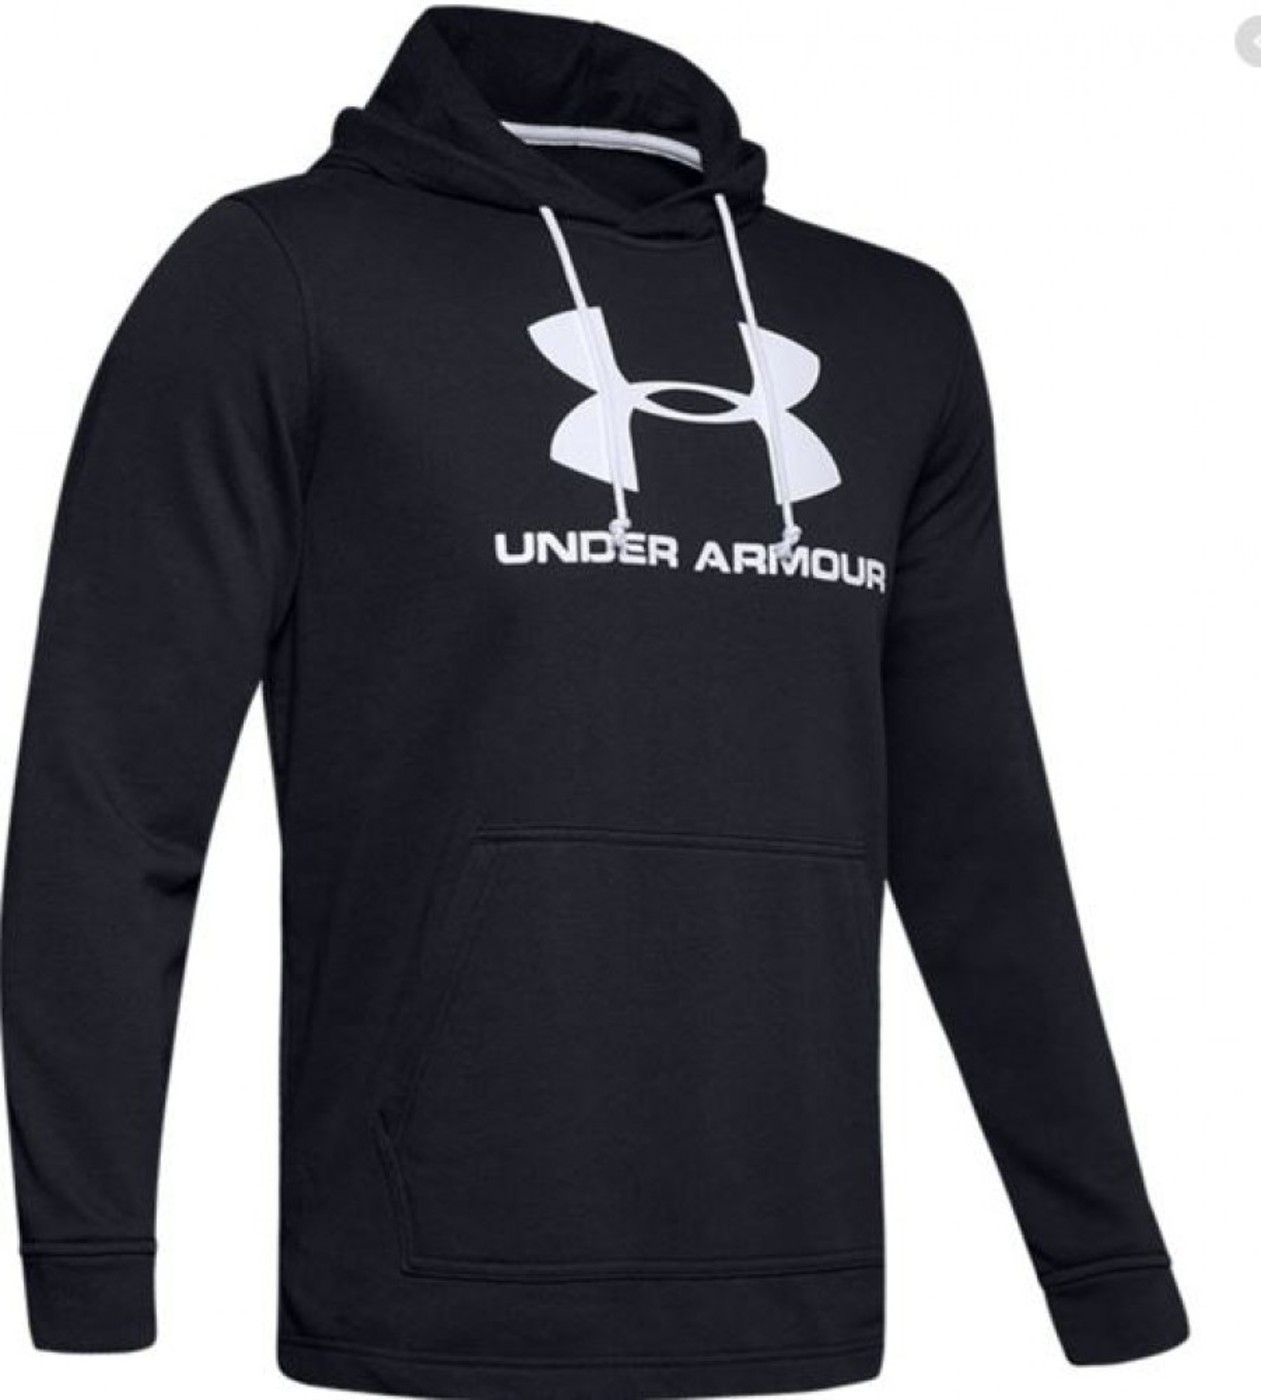 UNDER ARMOUR SPORTSTYLE TERRY LOGO HOODIE - Herren